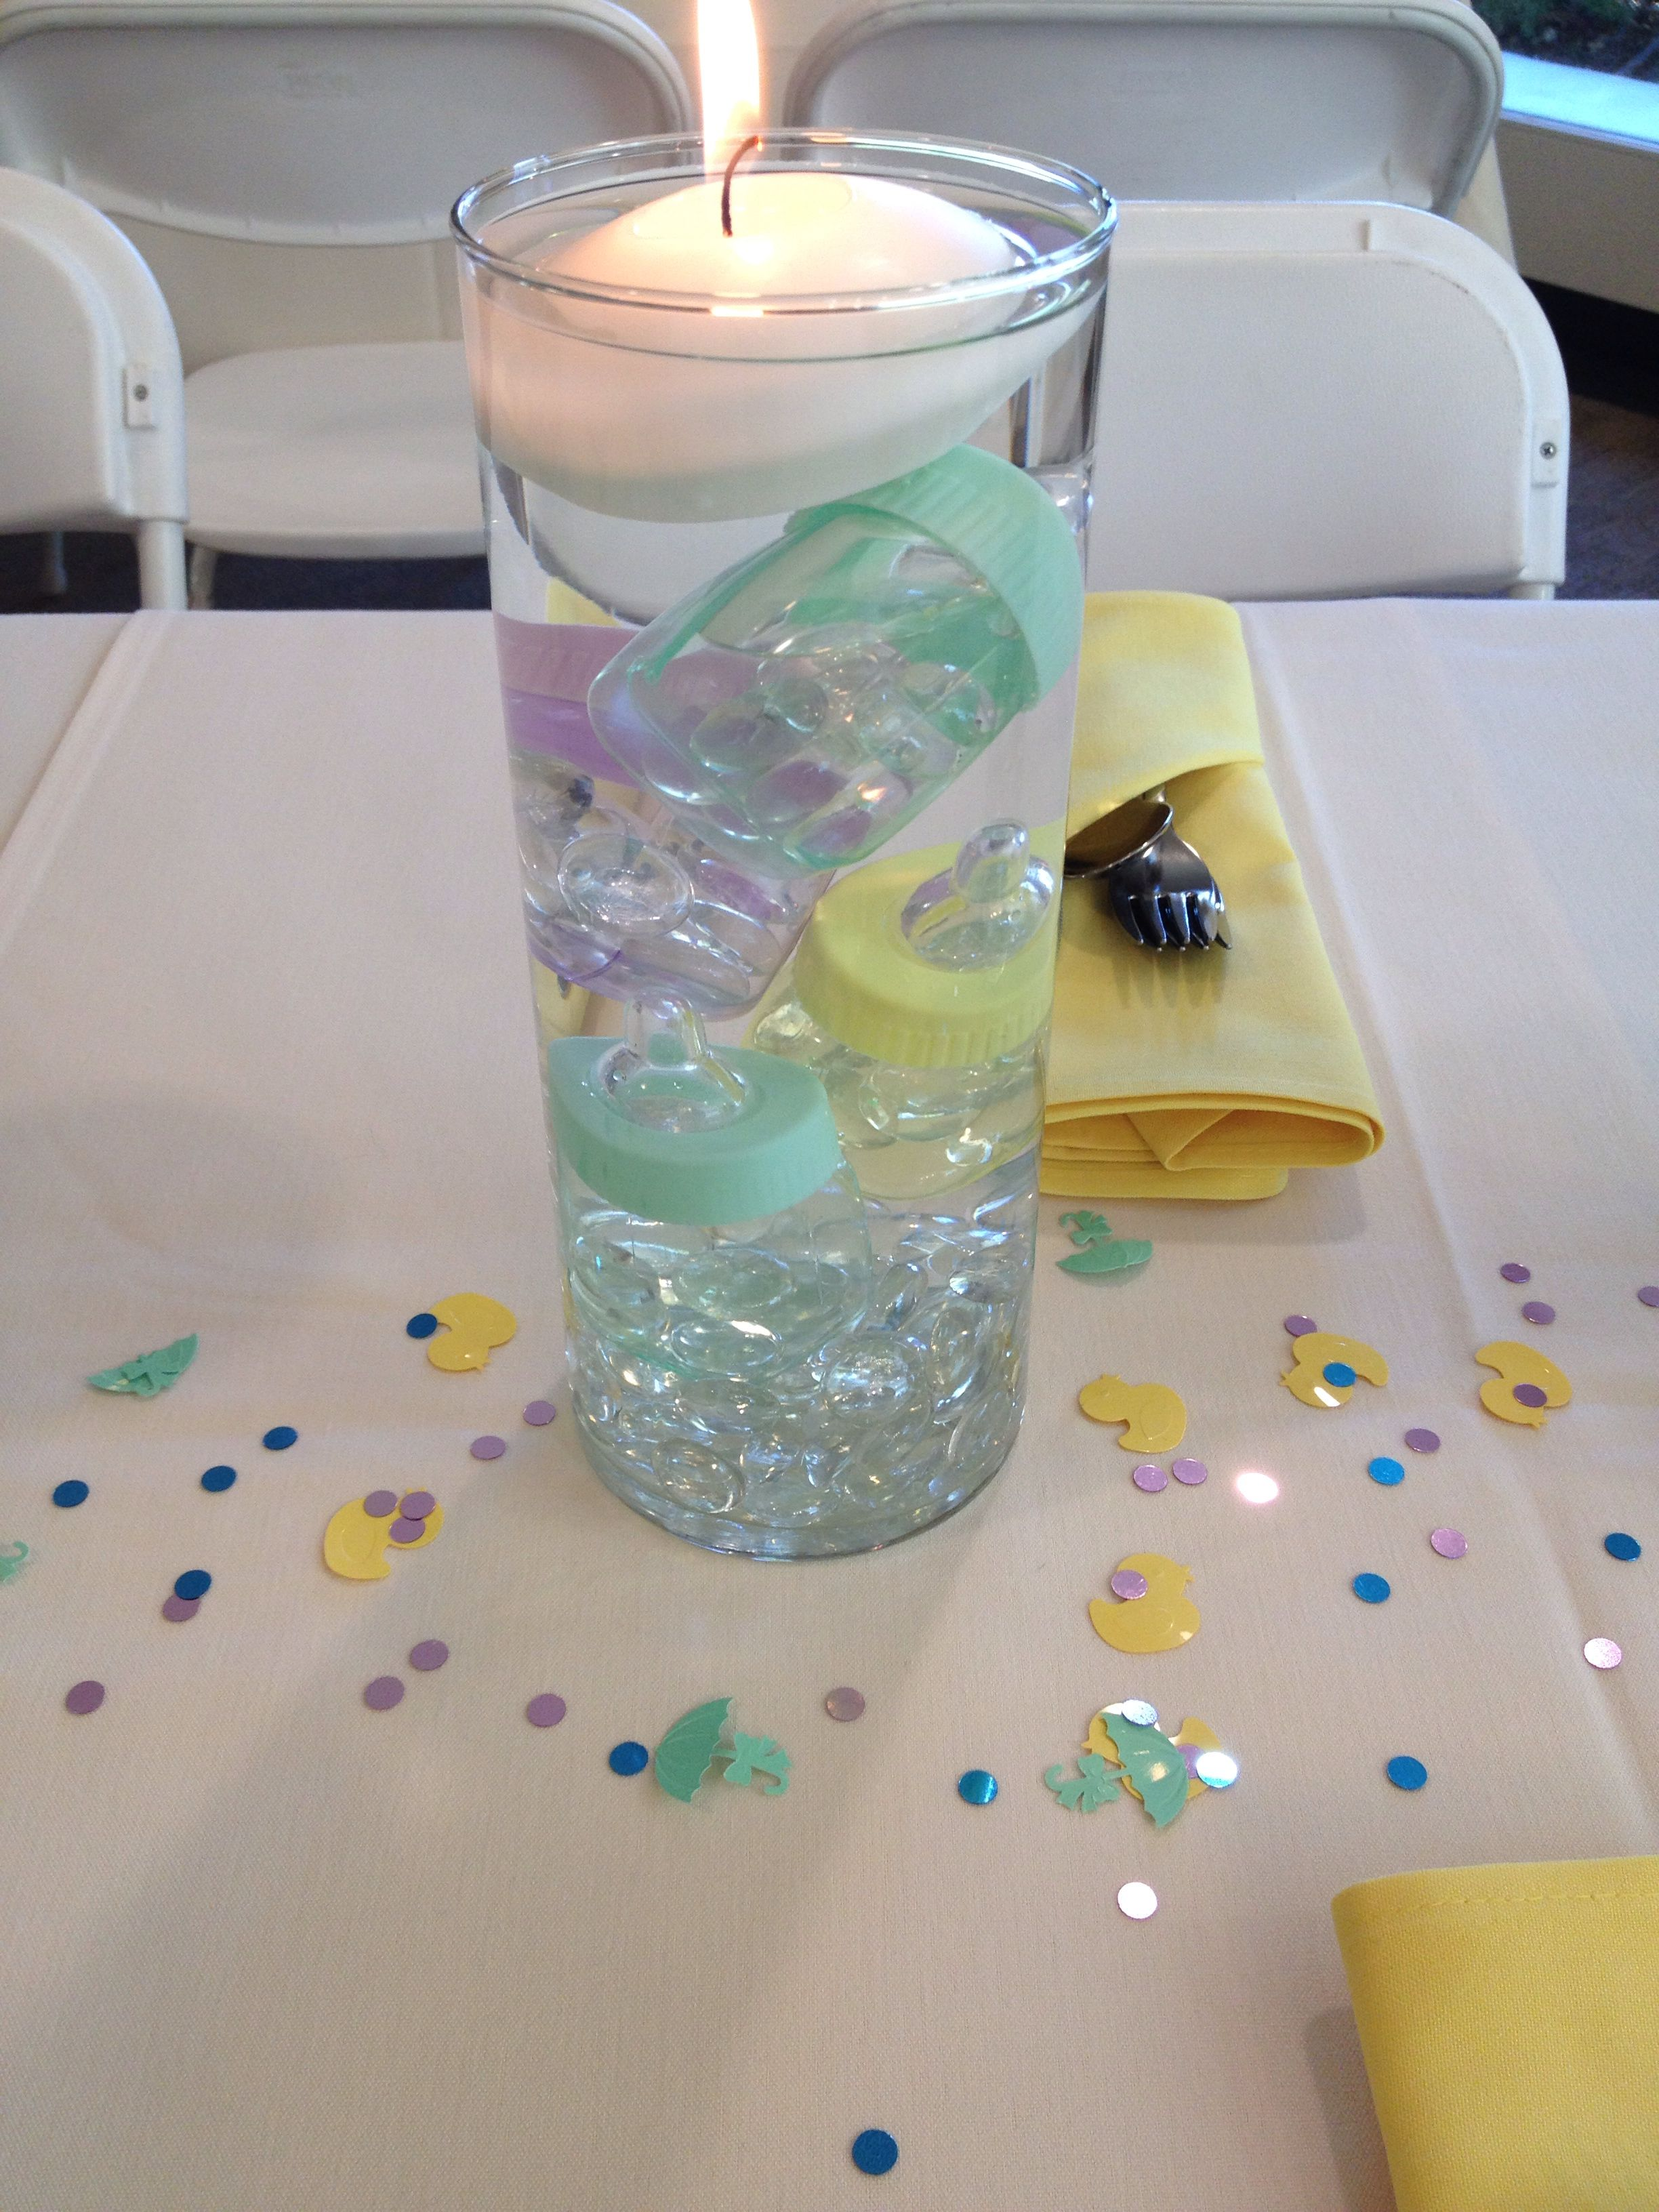 Baby Shower Centerpiece Gender Neutral Baby Bottles And Floating Candles Modern Baby Shower Games Baby Shower Centerpieces Baby Shower Planning